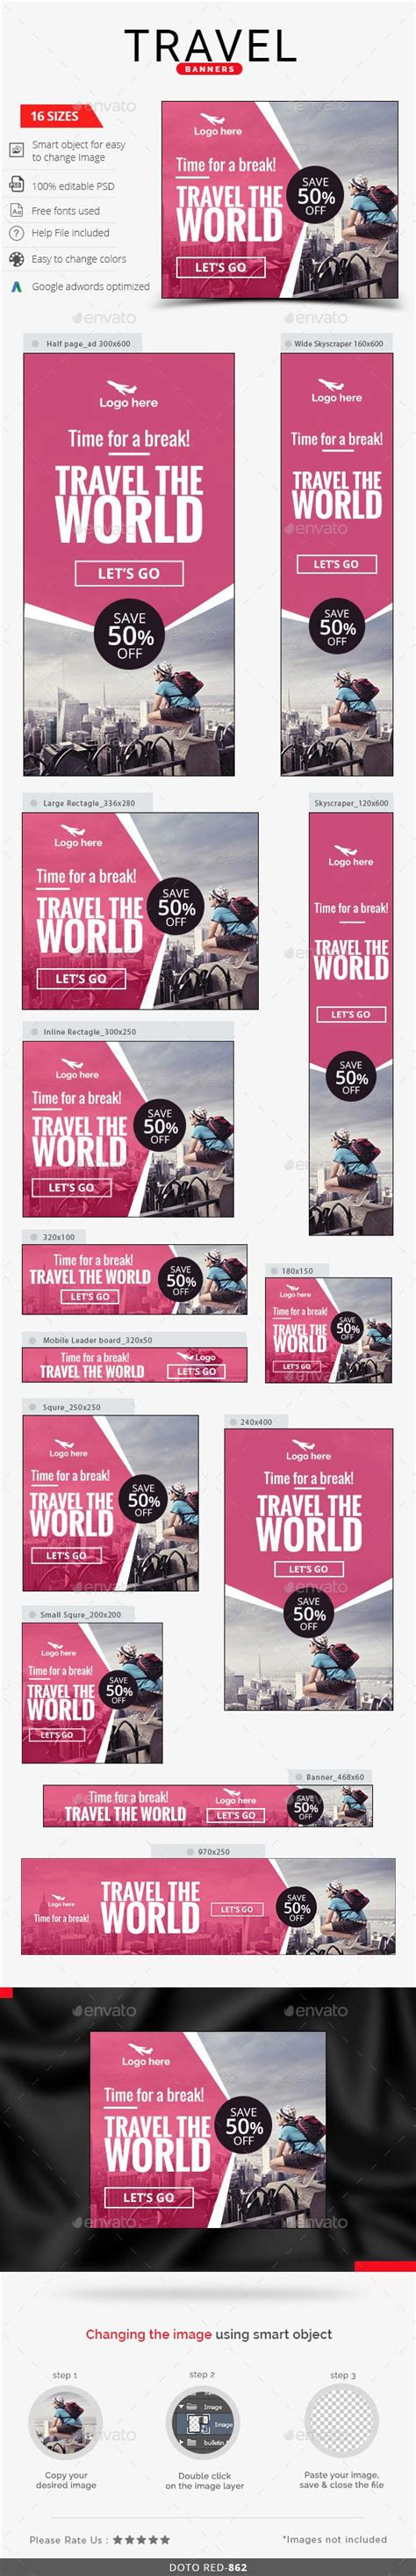 16 Bakery Templates Psd Eps Cdr Format 25 Best Ideas About Web Banner Design On